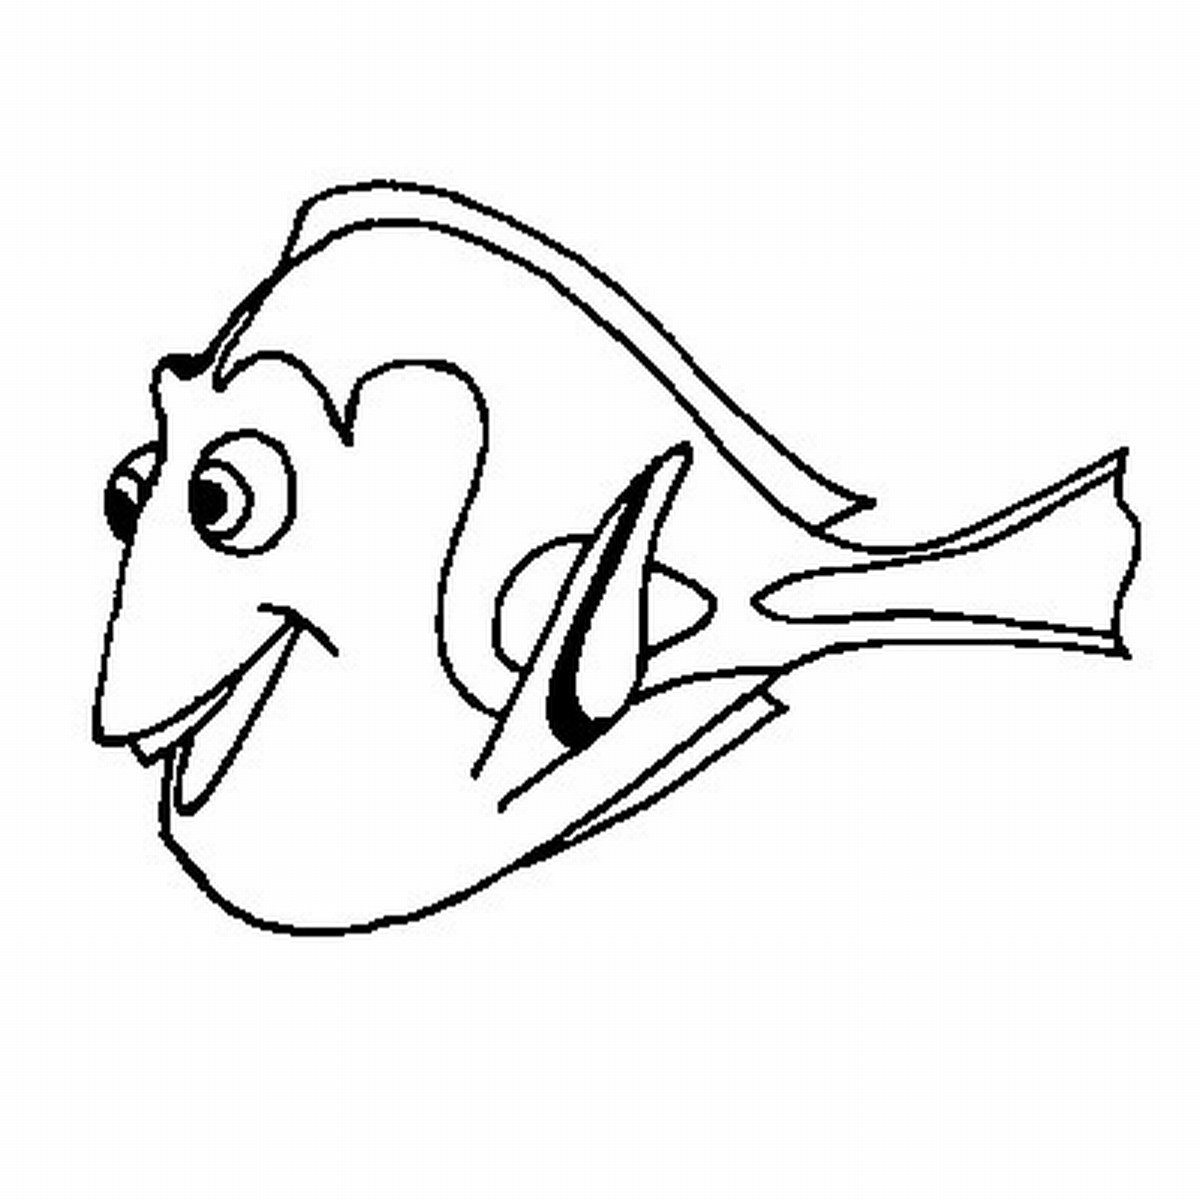 nemo fish coloring pages - Pixar Coloring Pages Finding Nemo